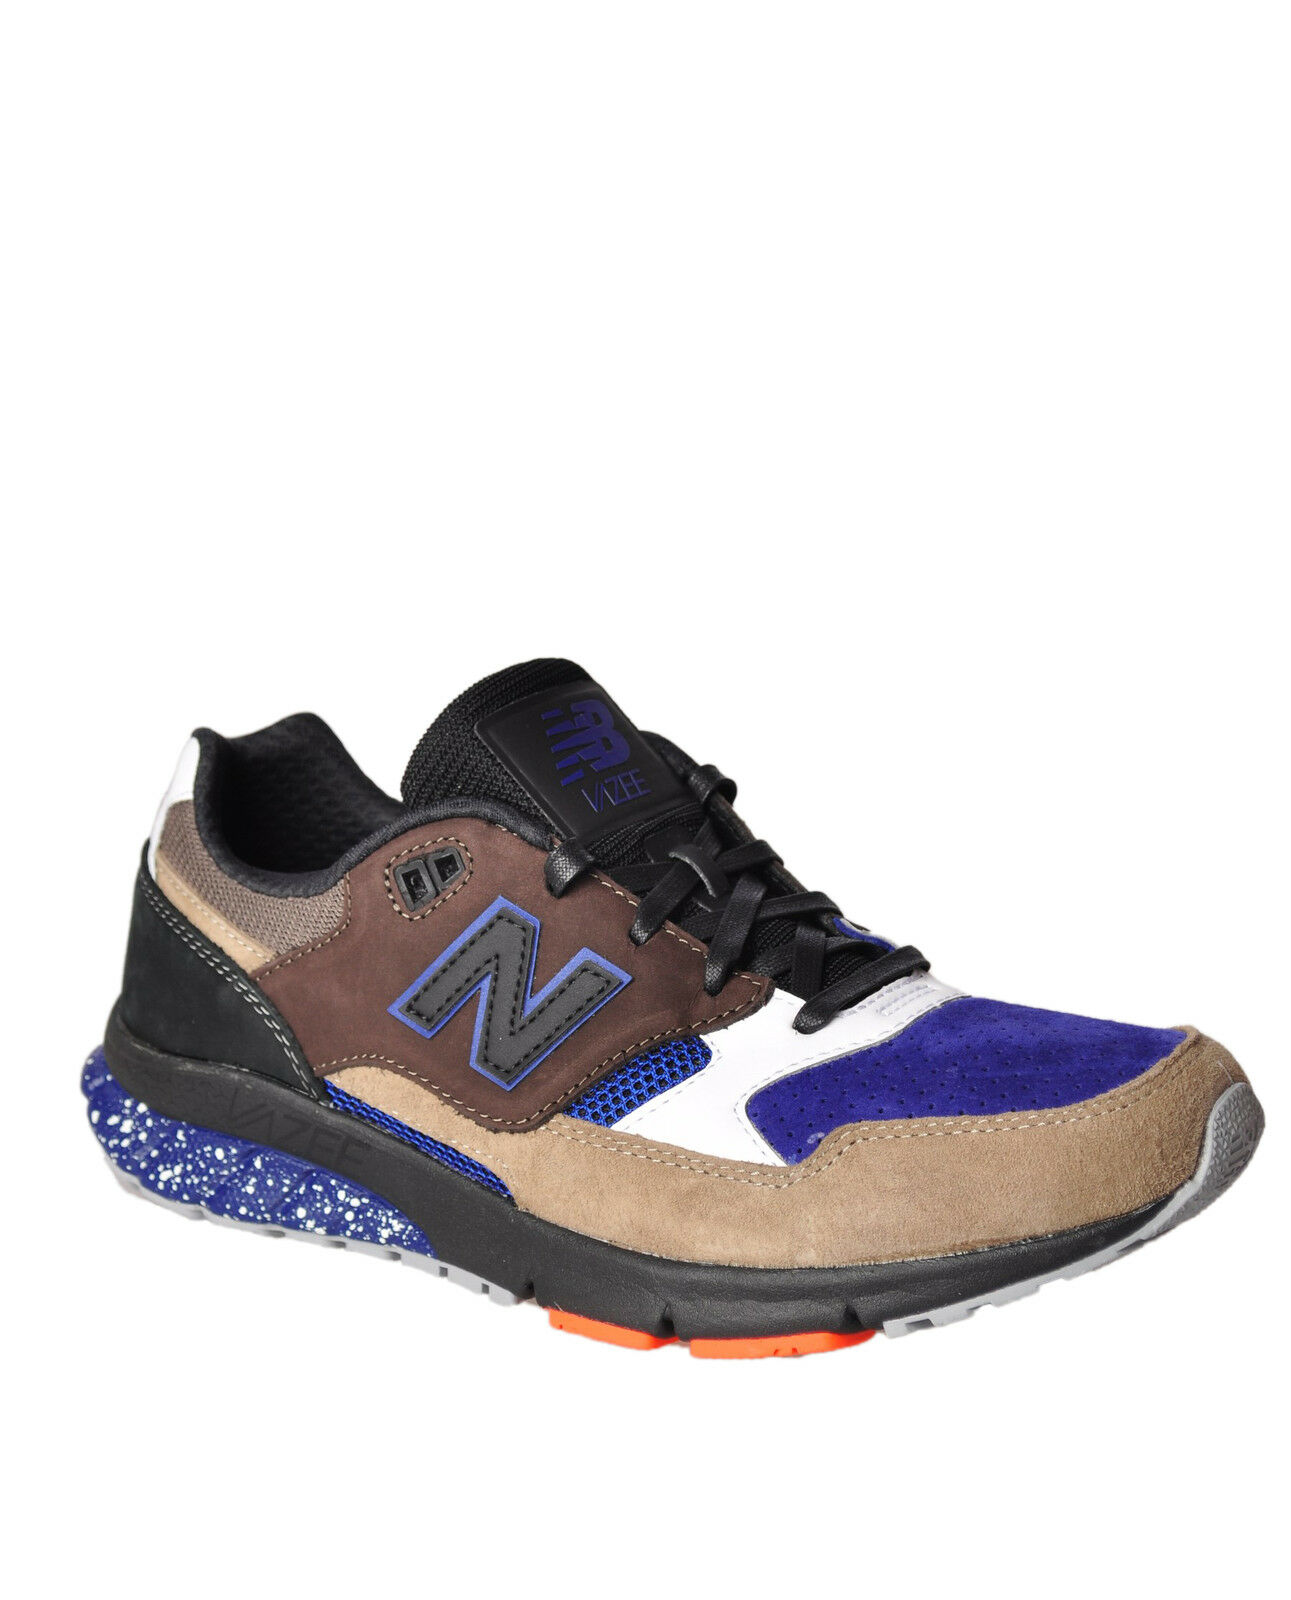 New Balance  -  Sneakers - - - Male - 42.5 - Brown - 1578926B165935 abcfd4